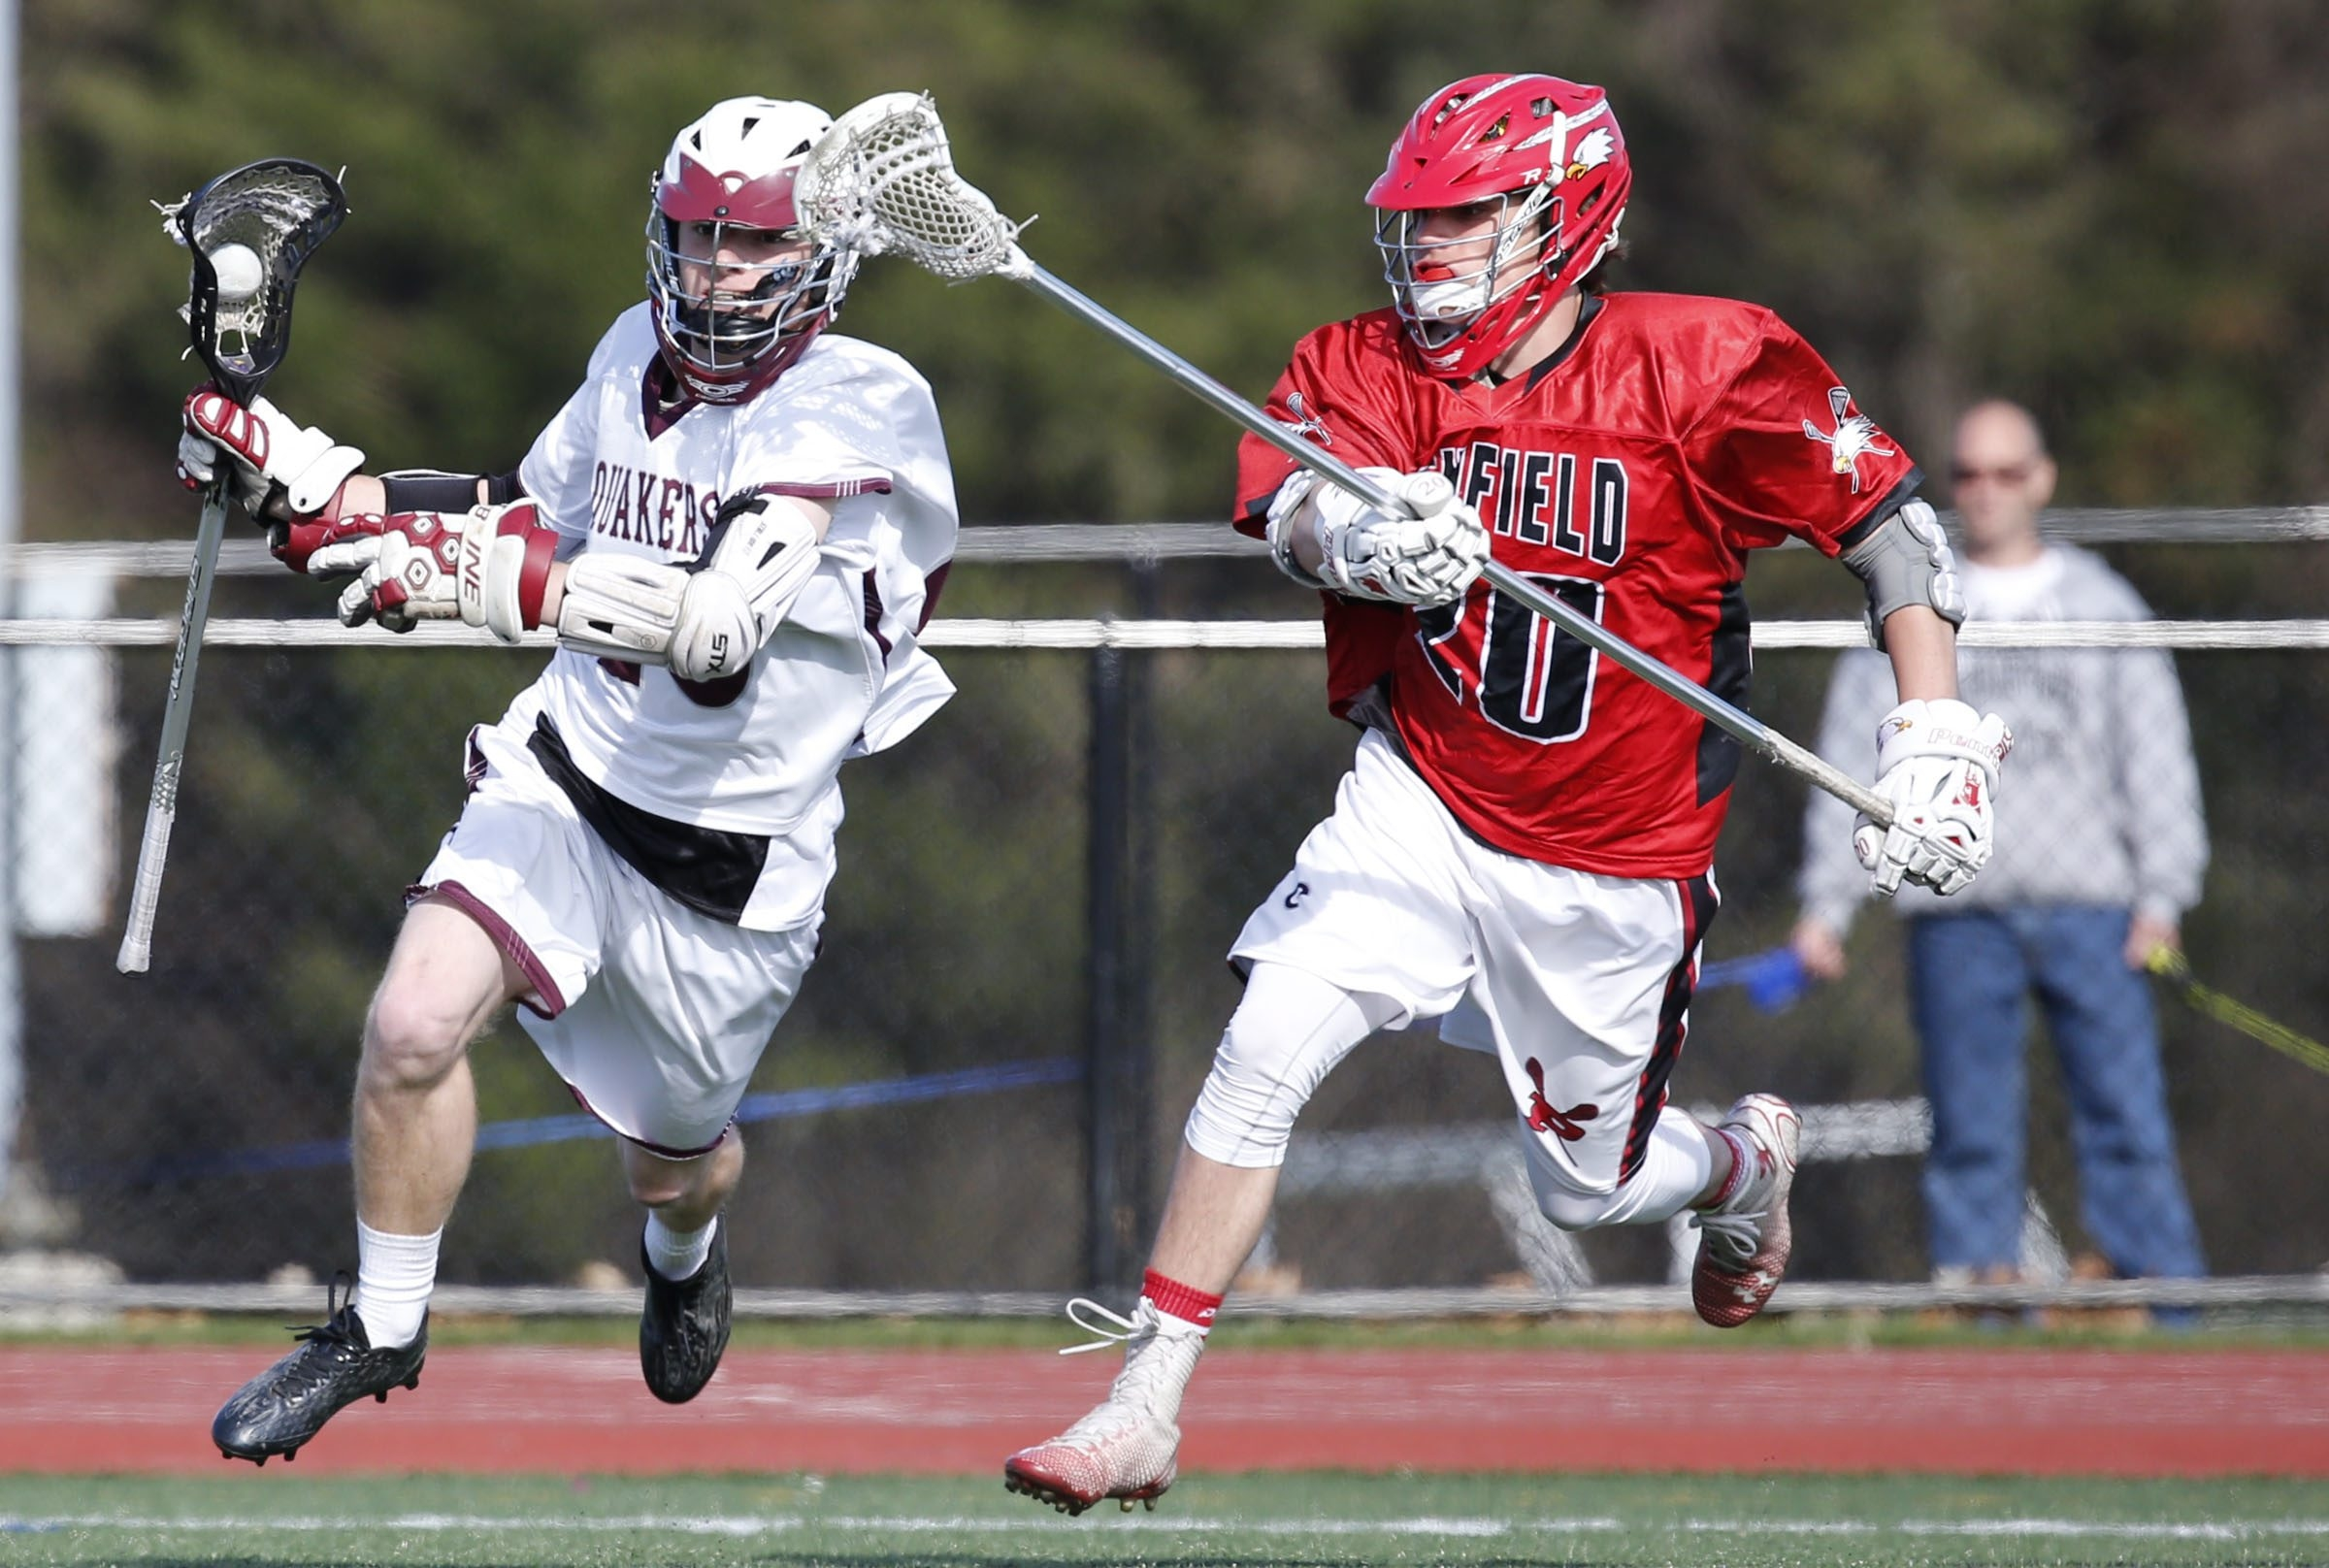 Orchard Park's Jack Crowley moves the ball upfield against Penfield during play in Thursday's game. The Quakers earned the 11-7 win.